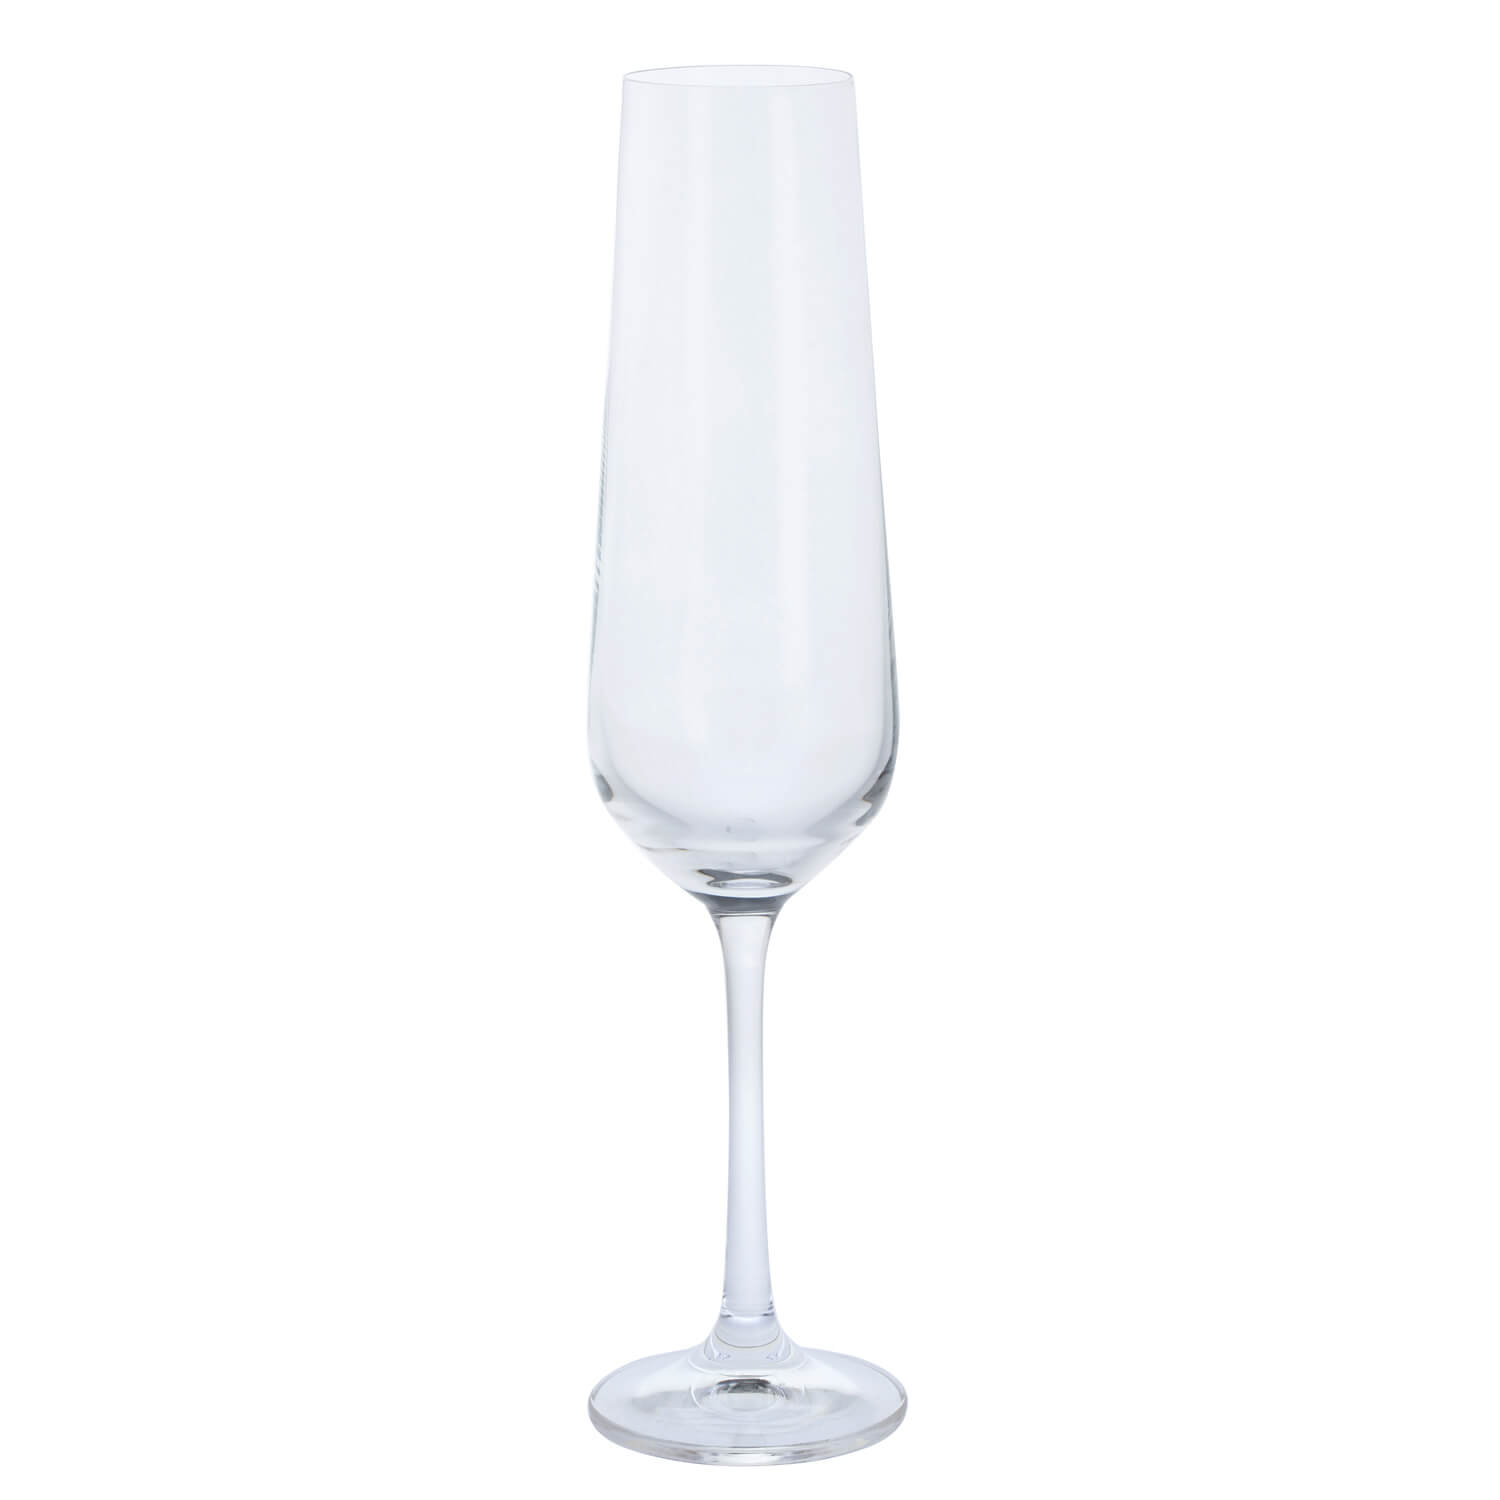 Image of Dartington Crystal Cheers Flute Glass, Clear